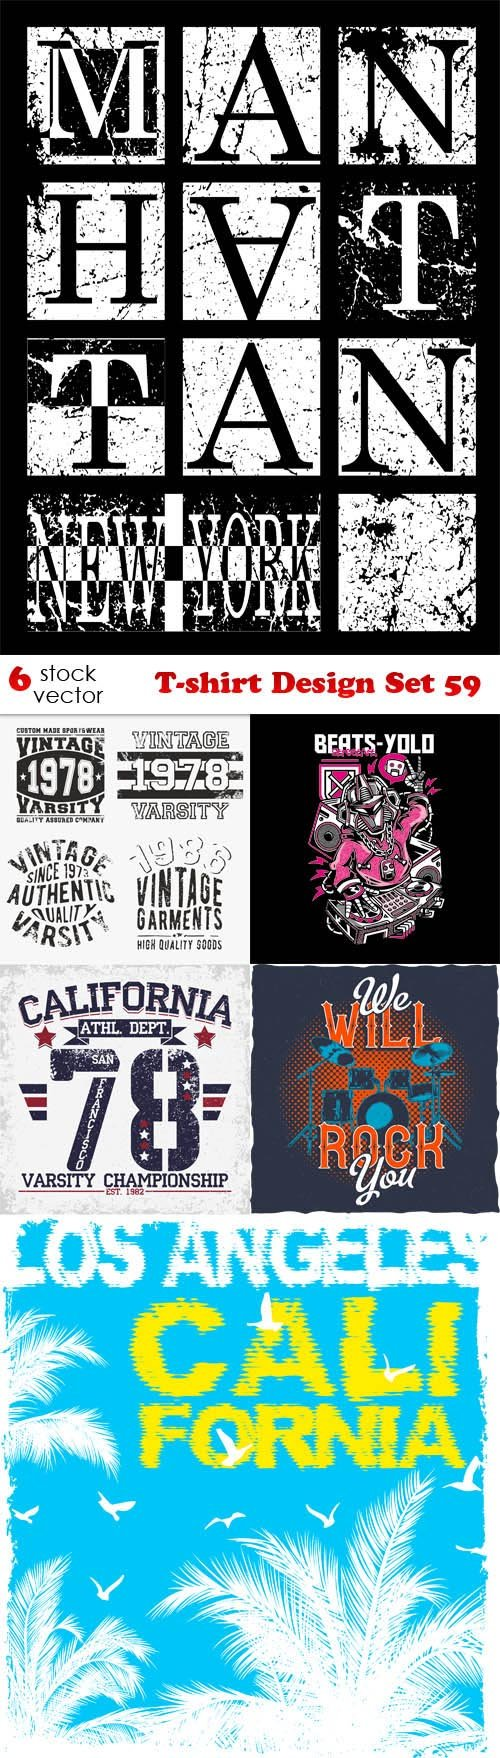 Vectors - T-shirt Design Set 59